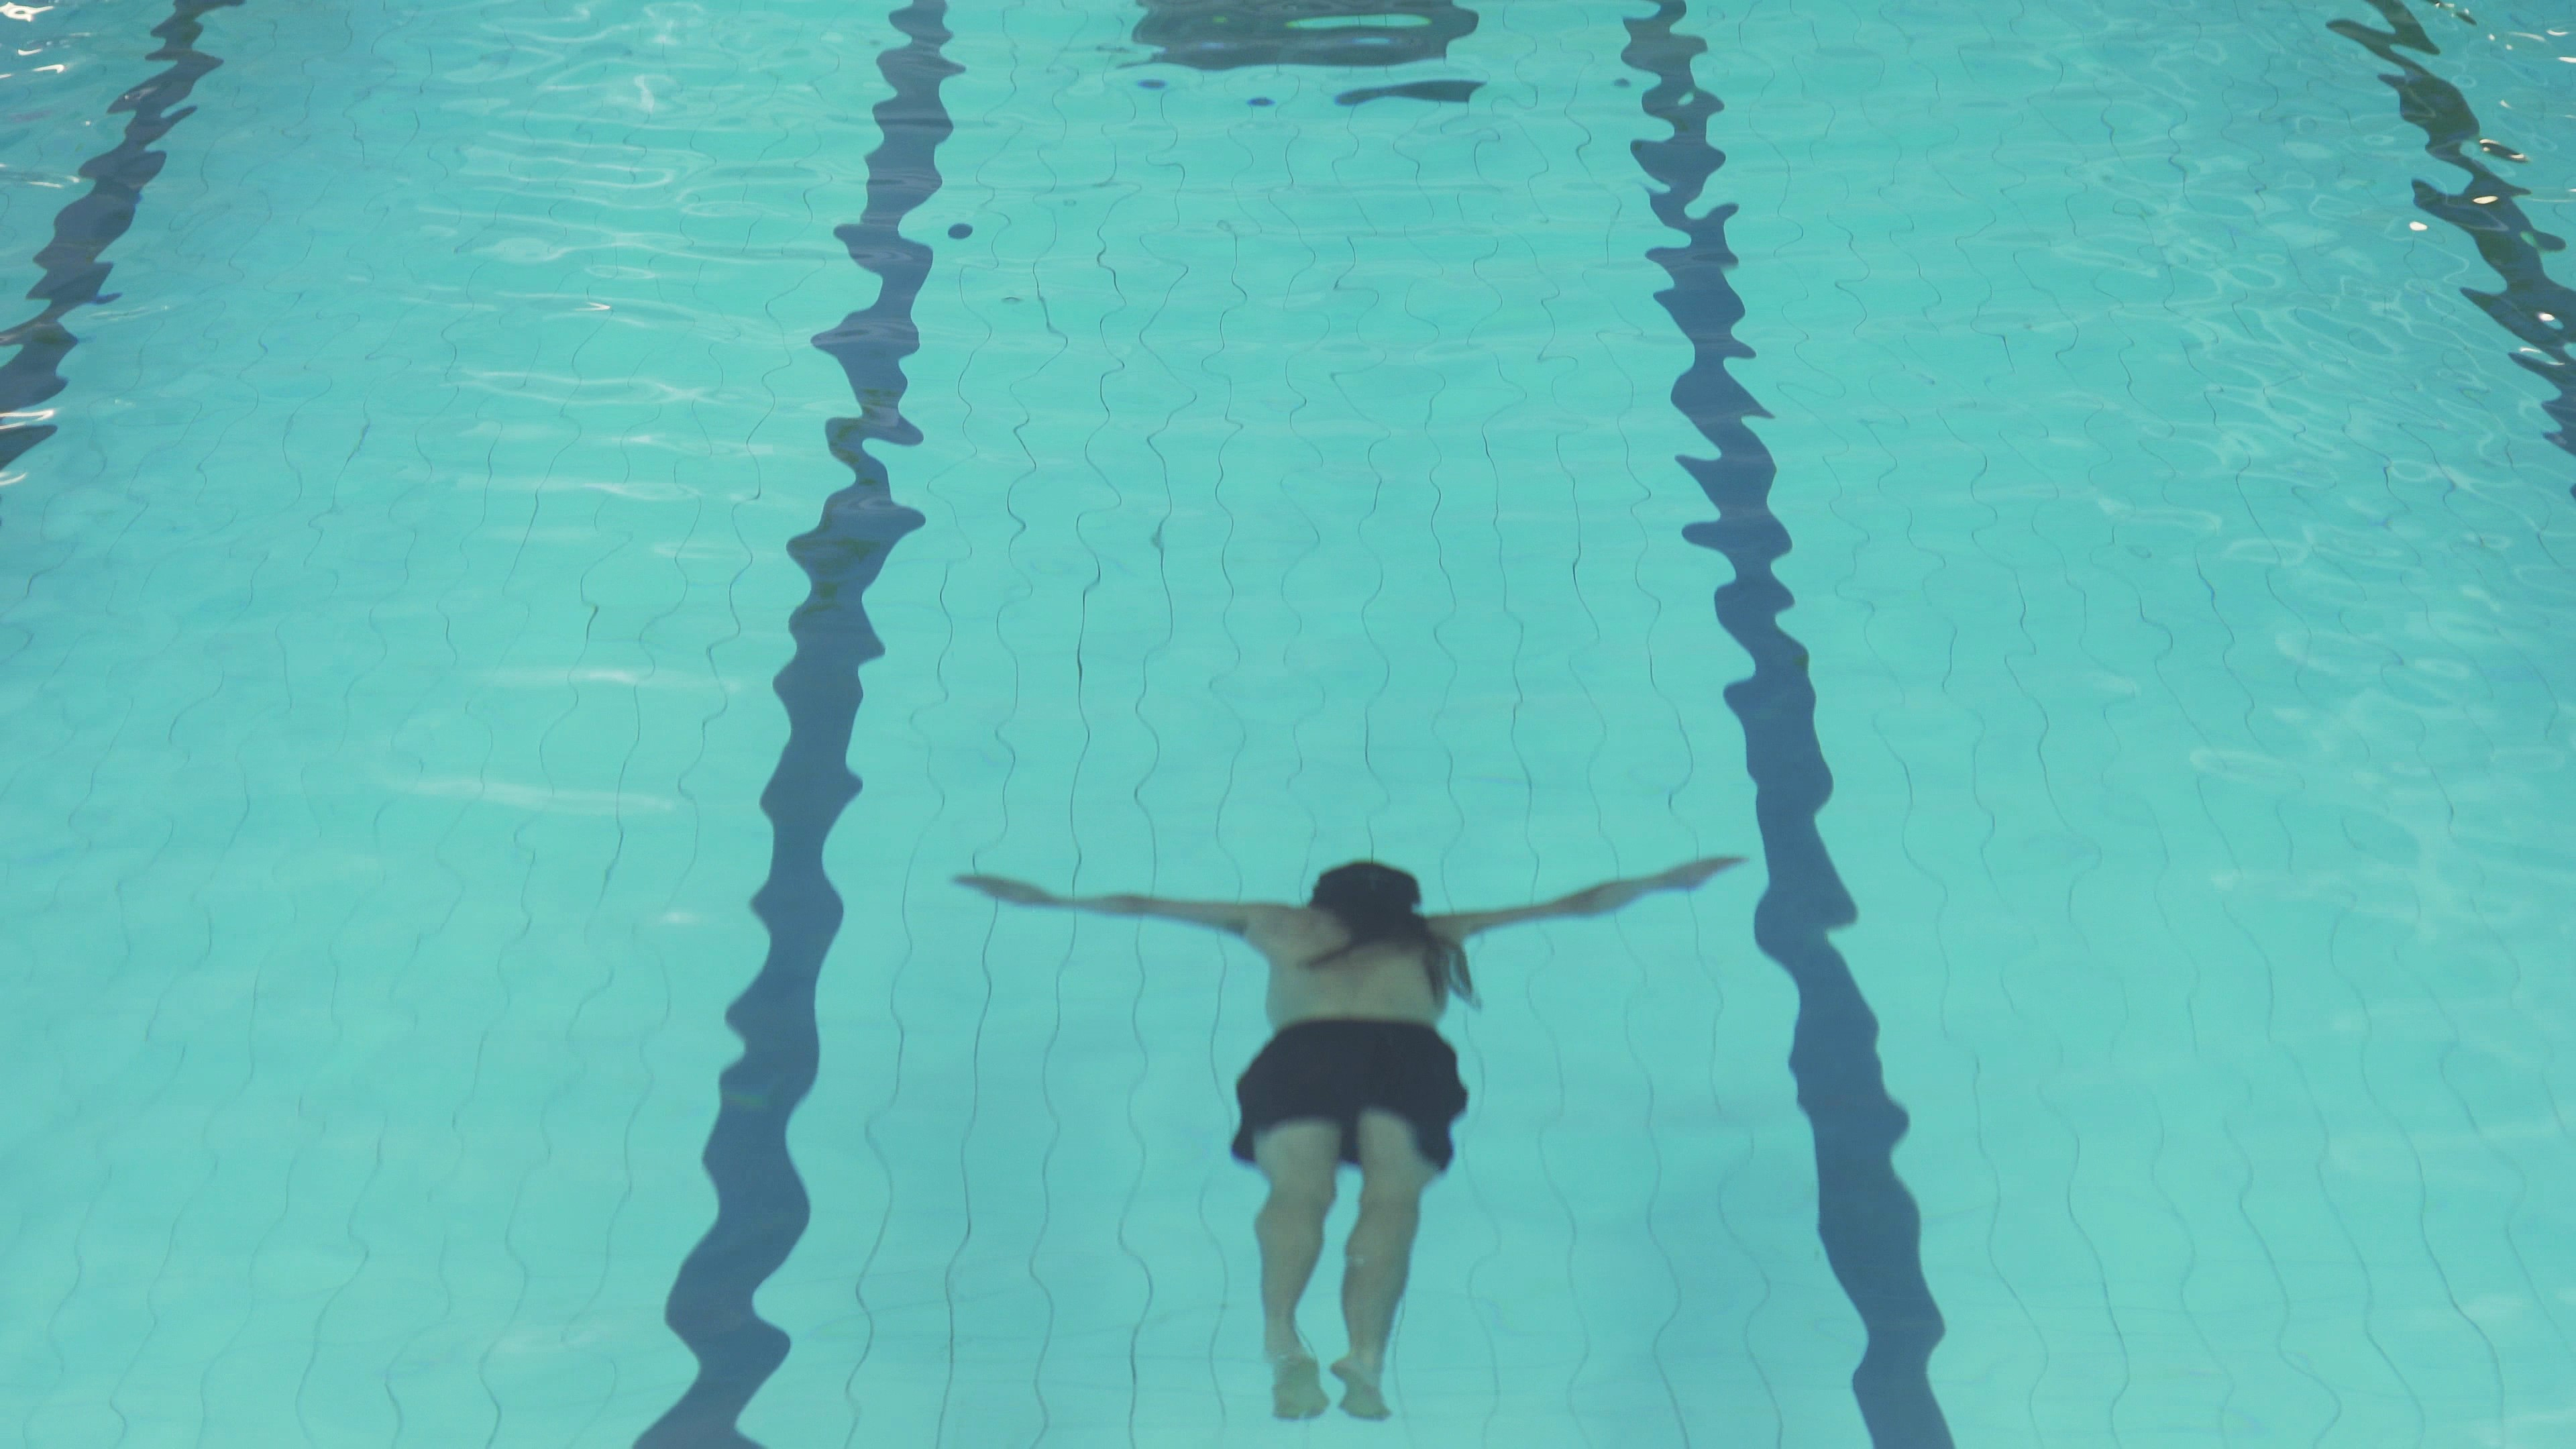 Leah Clements, To Not Follow Under, film still, 2019